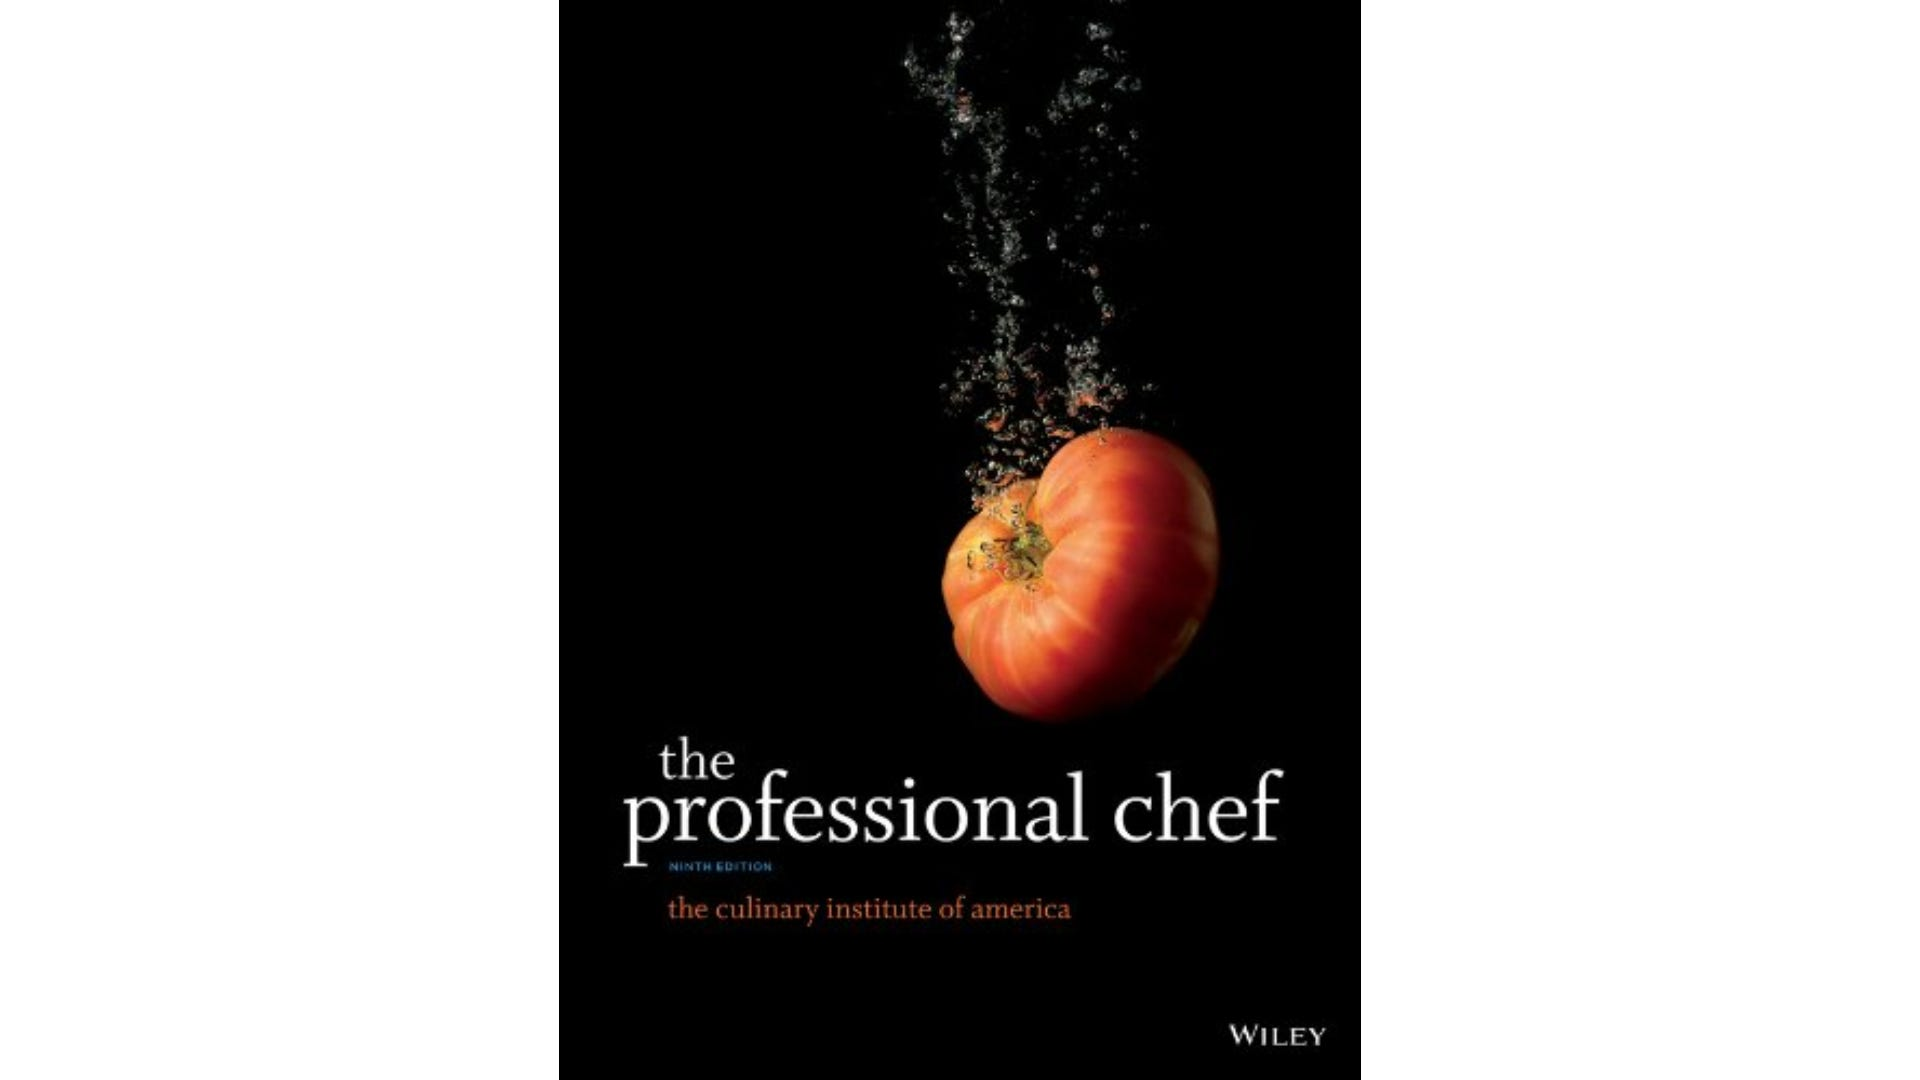 A black book cover that shows a red tomato falling through water.